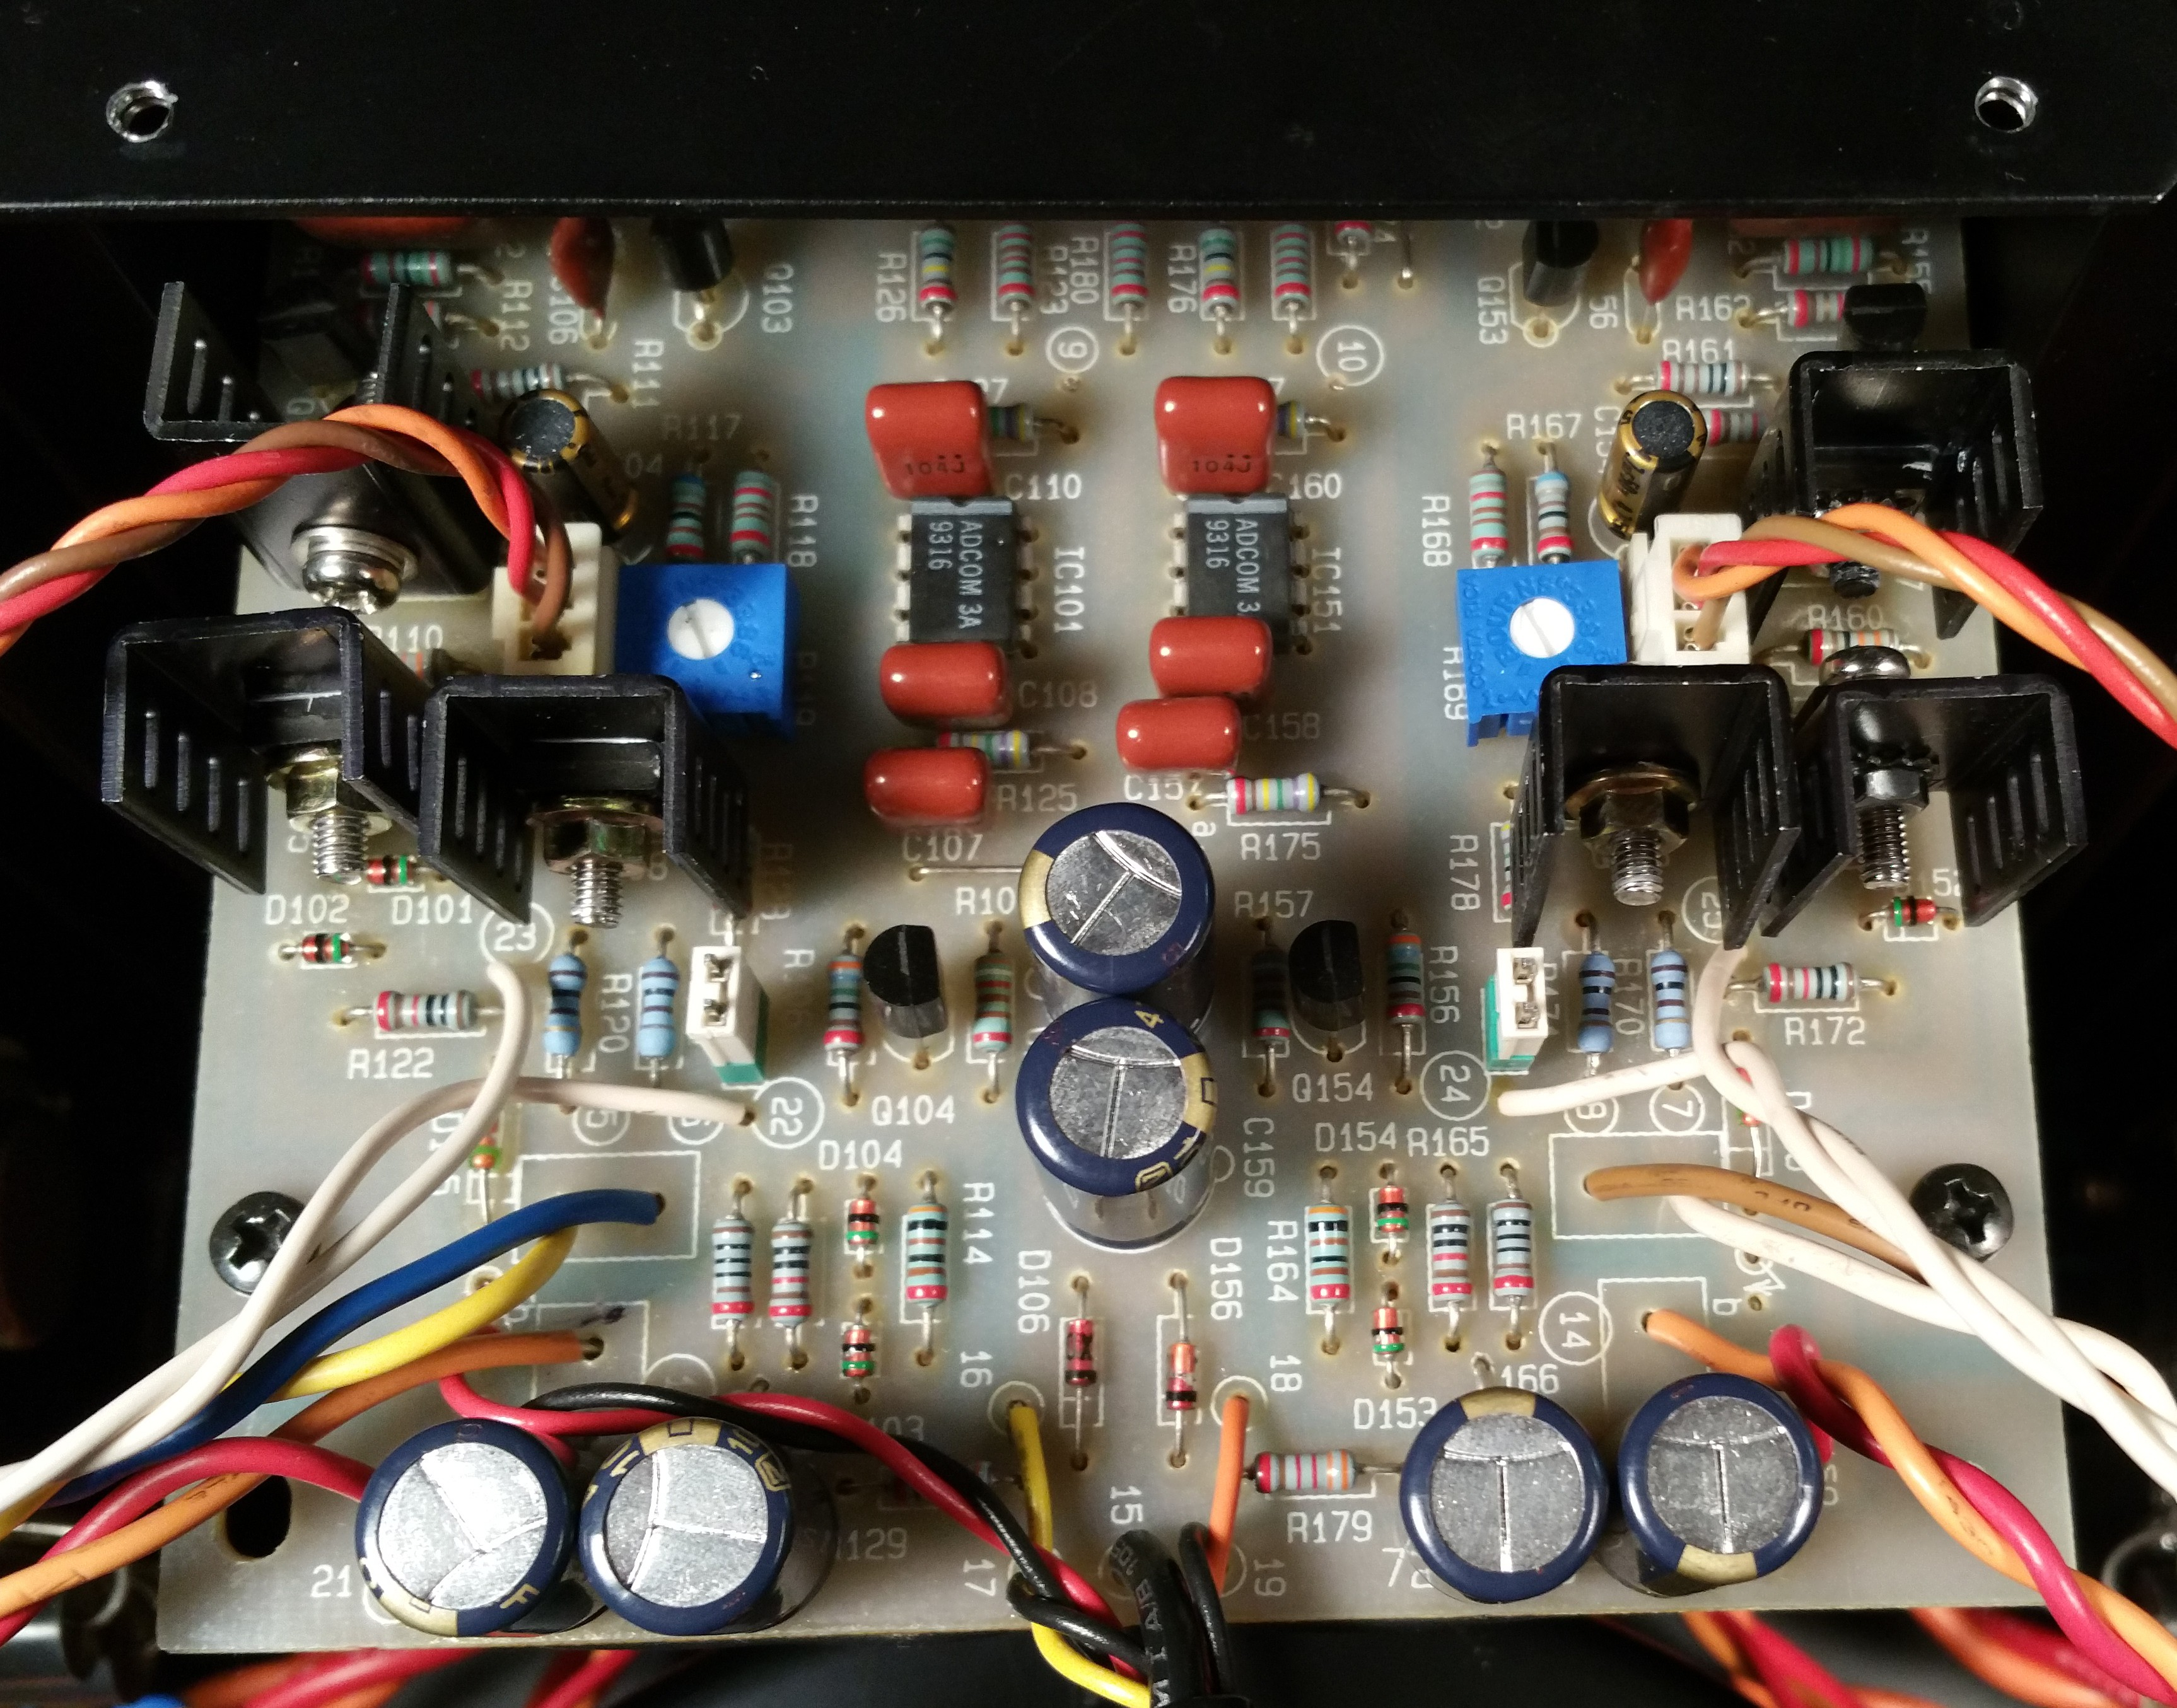 331483636211 furthermore Automatic Coil Winder Pic18f4550 Based Control Unit Schematic moreover Electrical Calculations likewise 309il7 furthermore 5F6A Modifications. on how to wire a audio capacitor